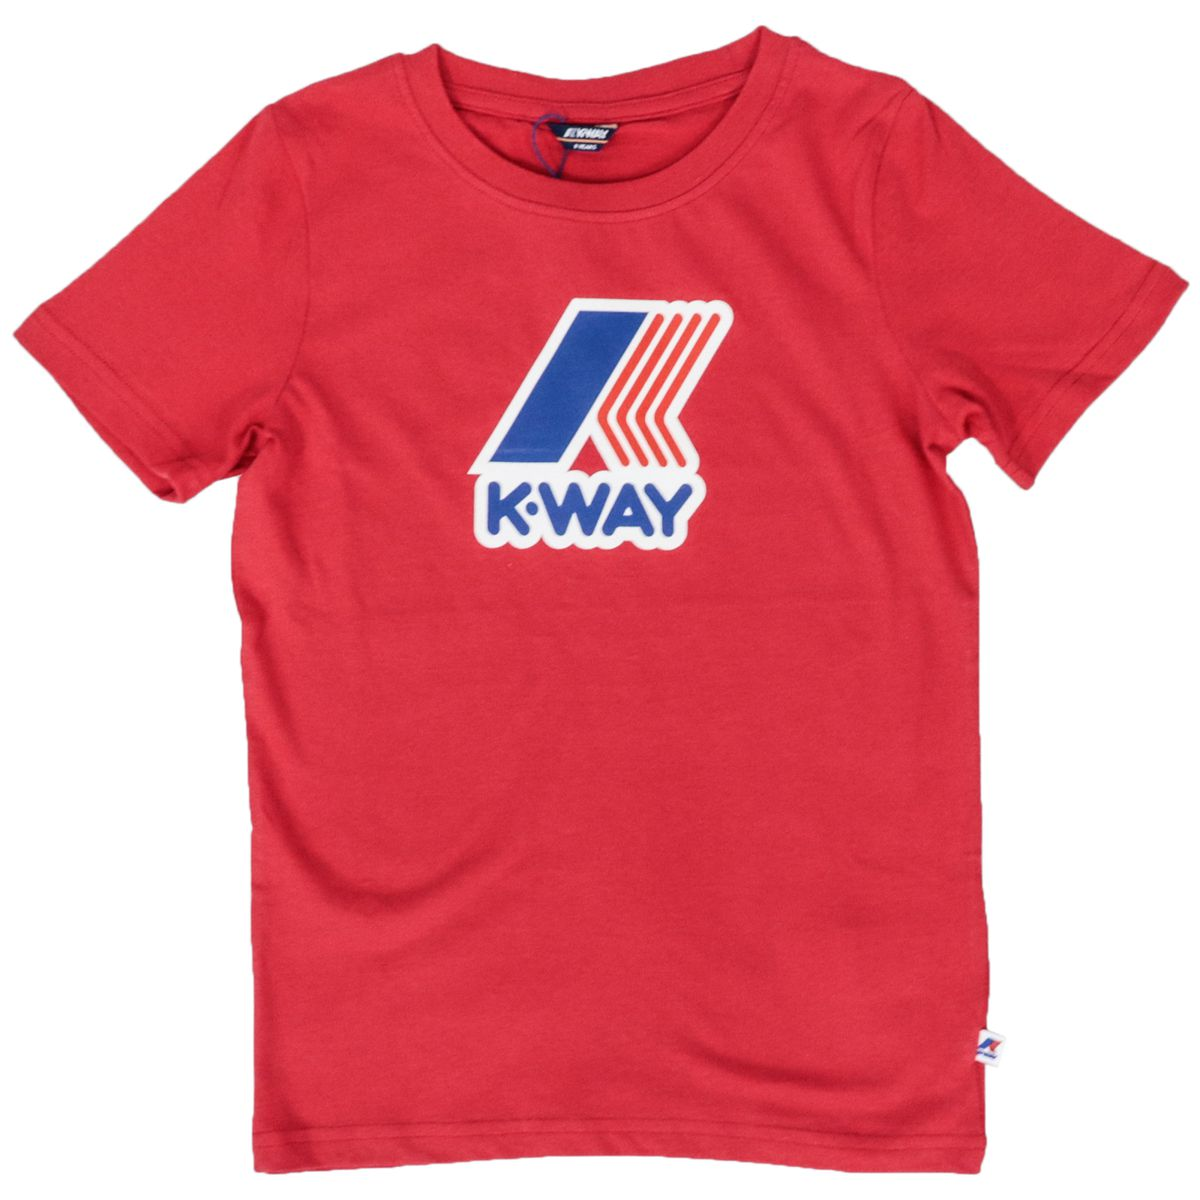 Crew neck T-shirt Pete Macro logo in cotton blend Red K-Way